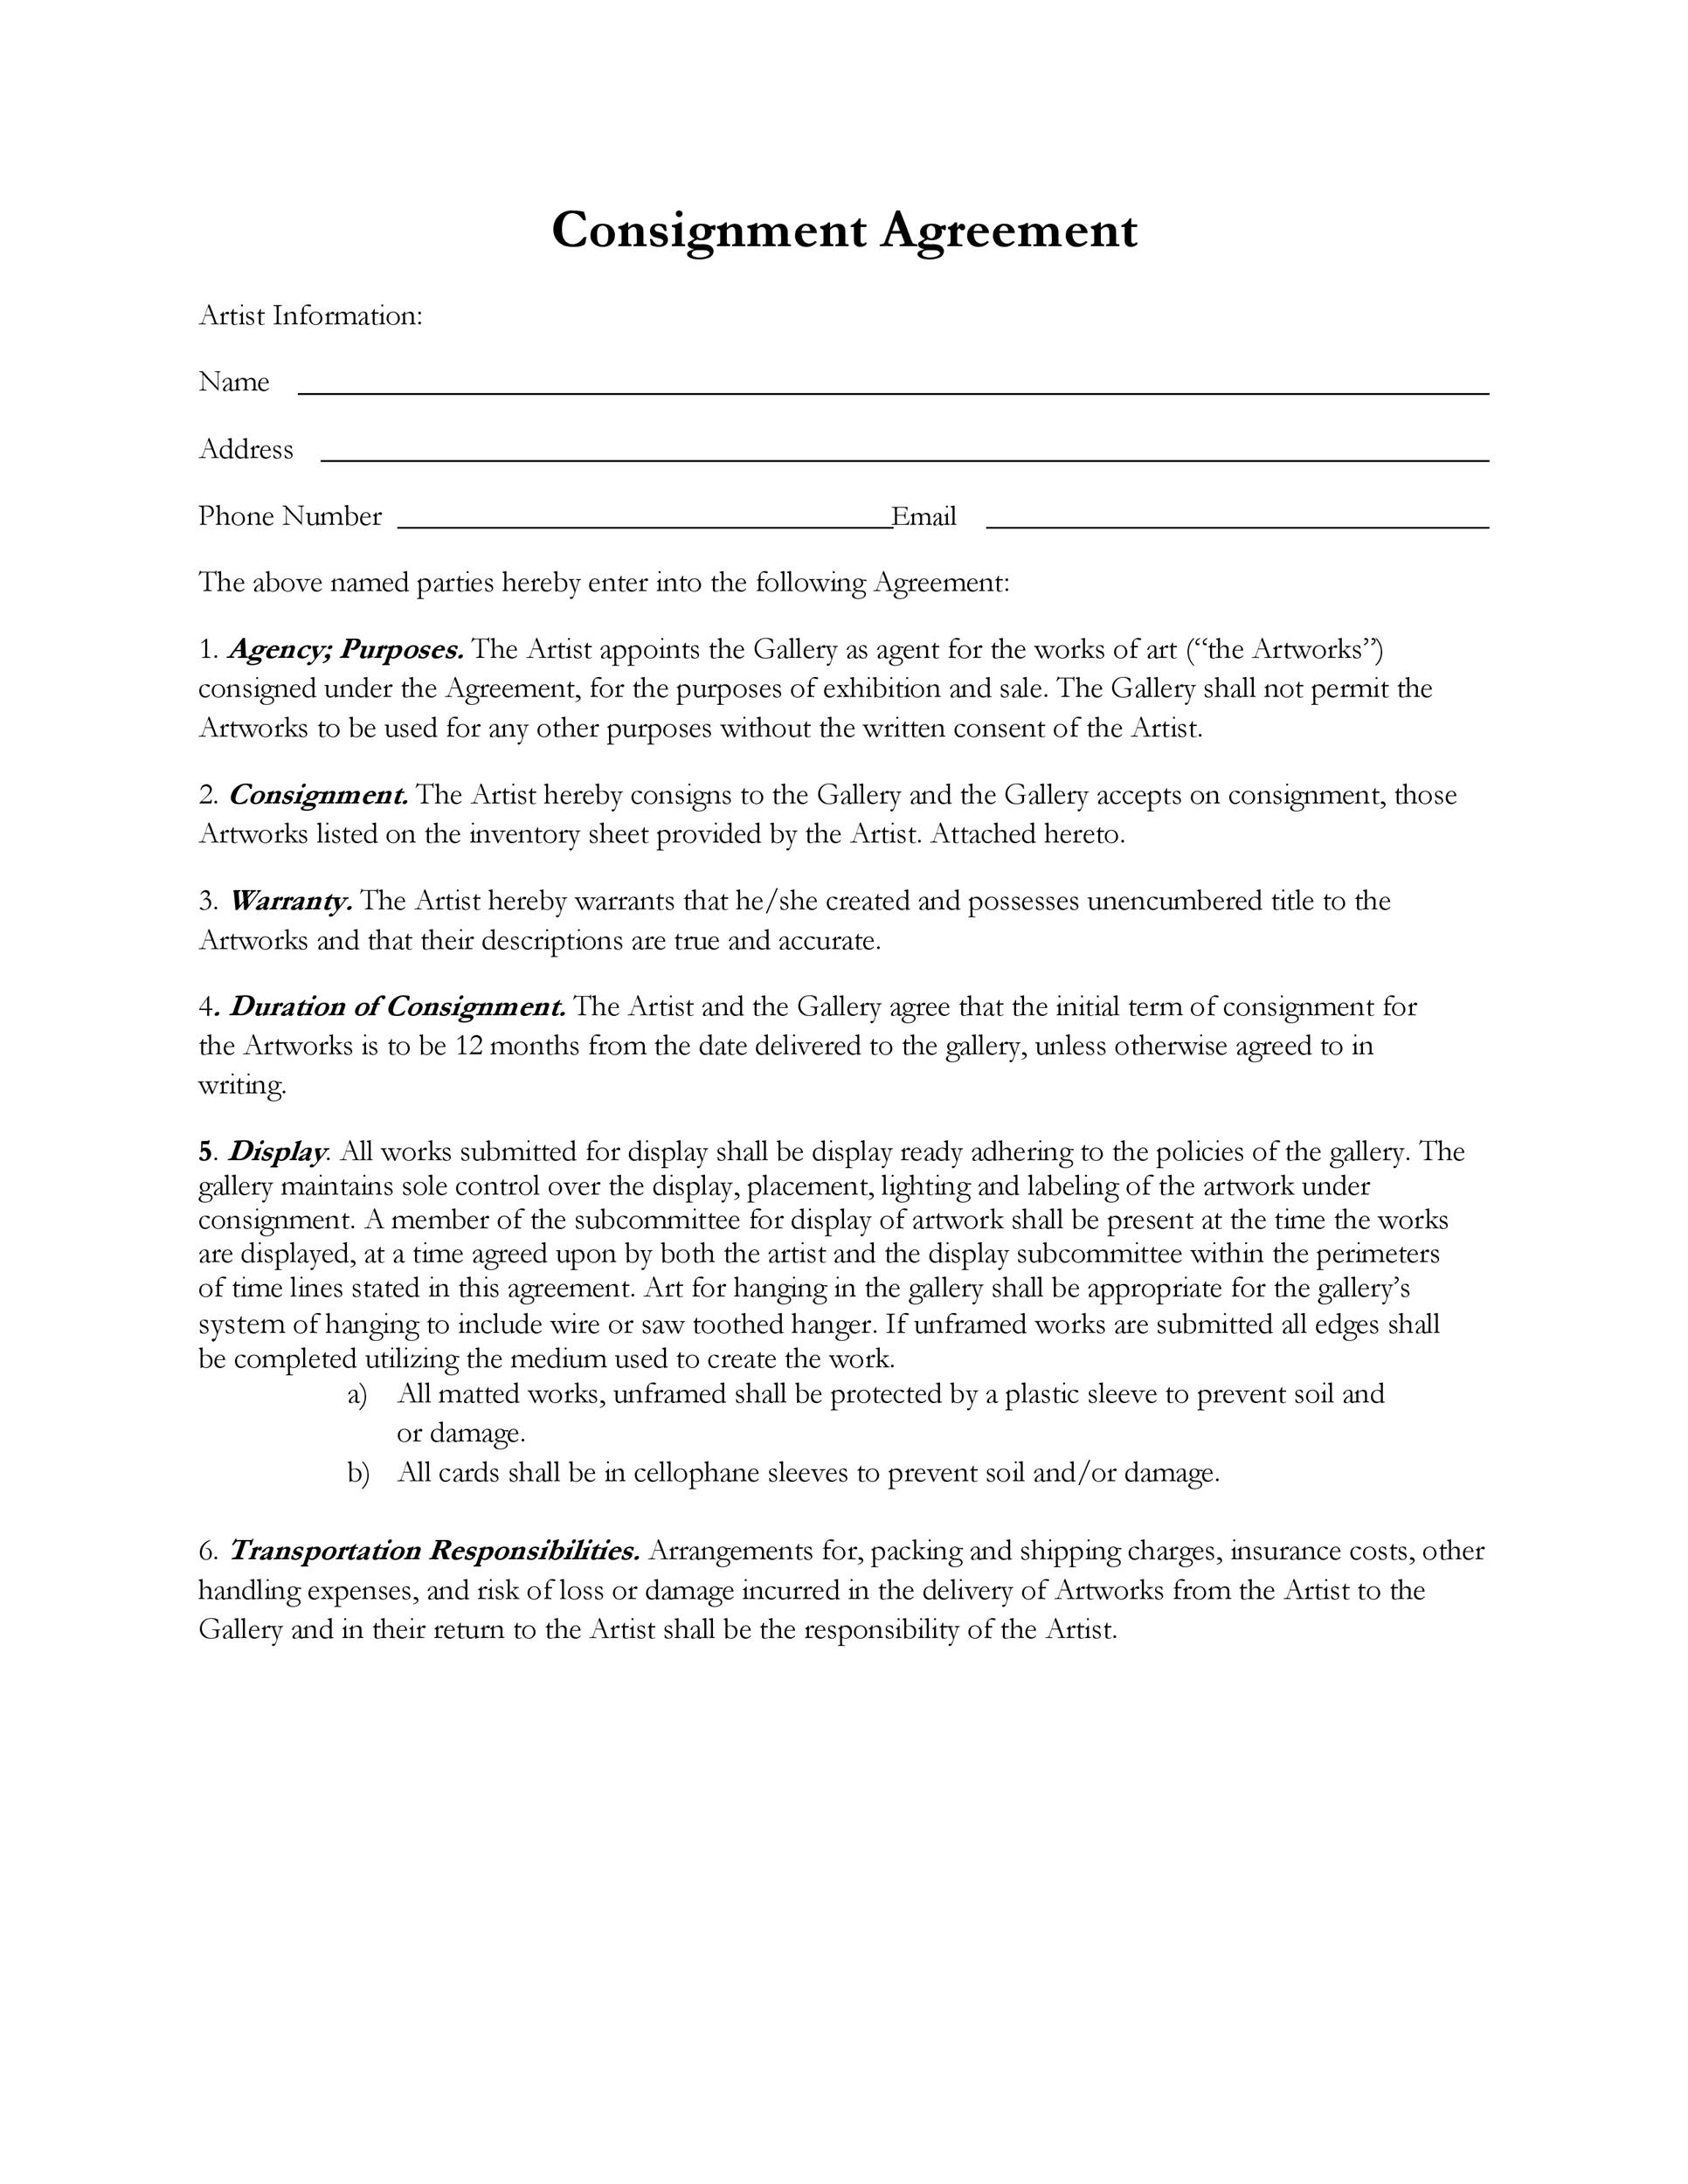 Free Consignment Agreement Template 21